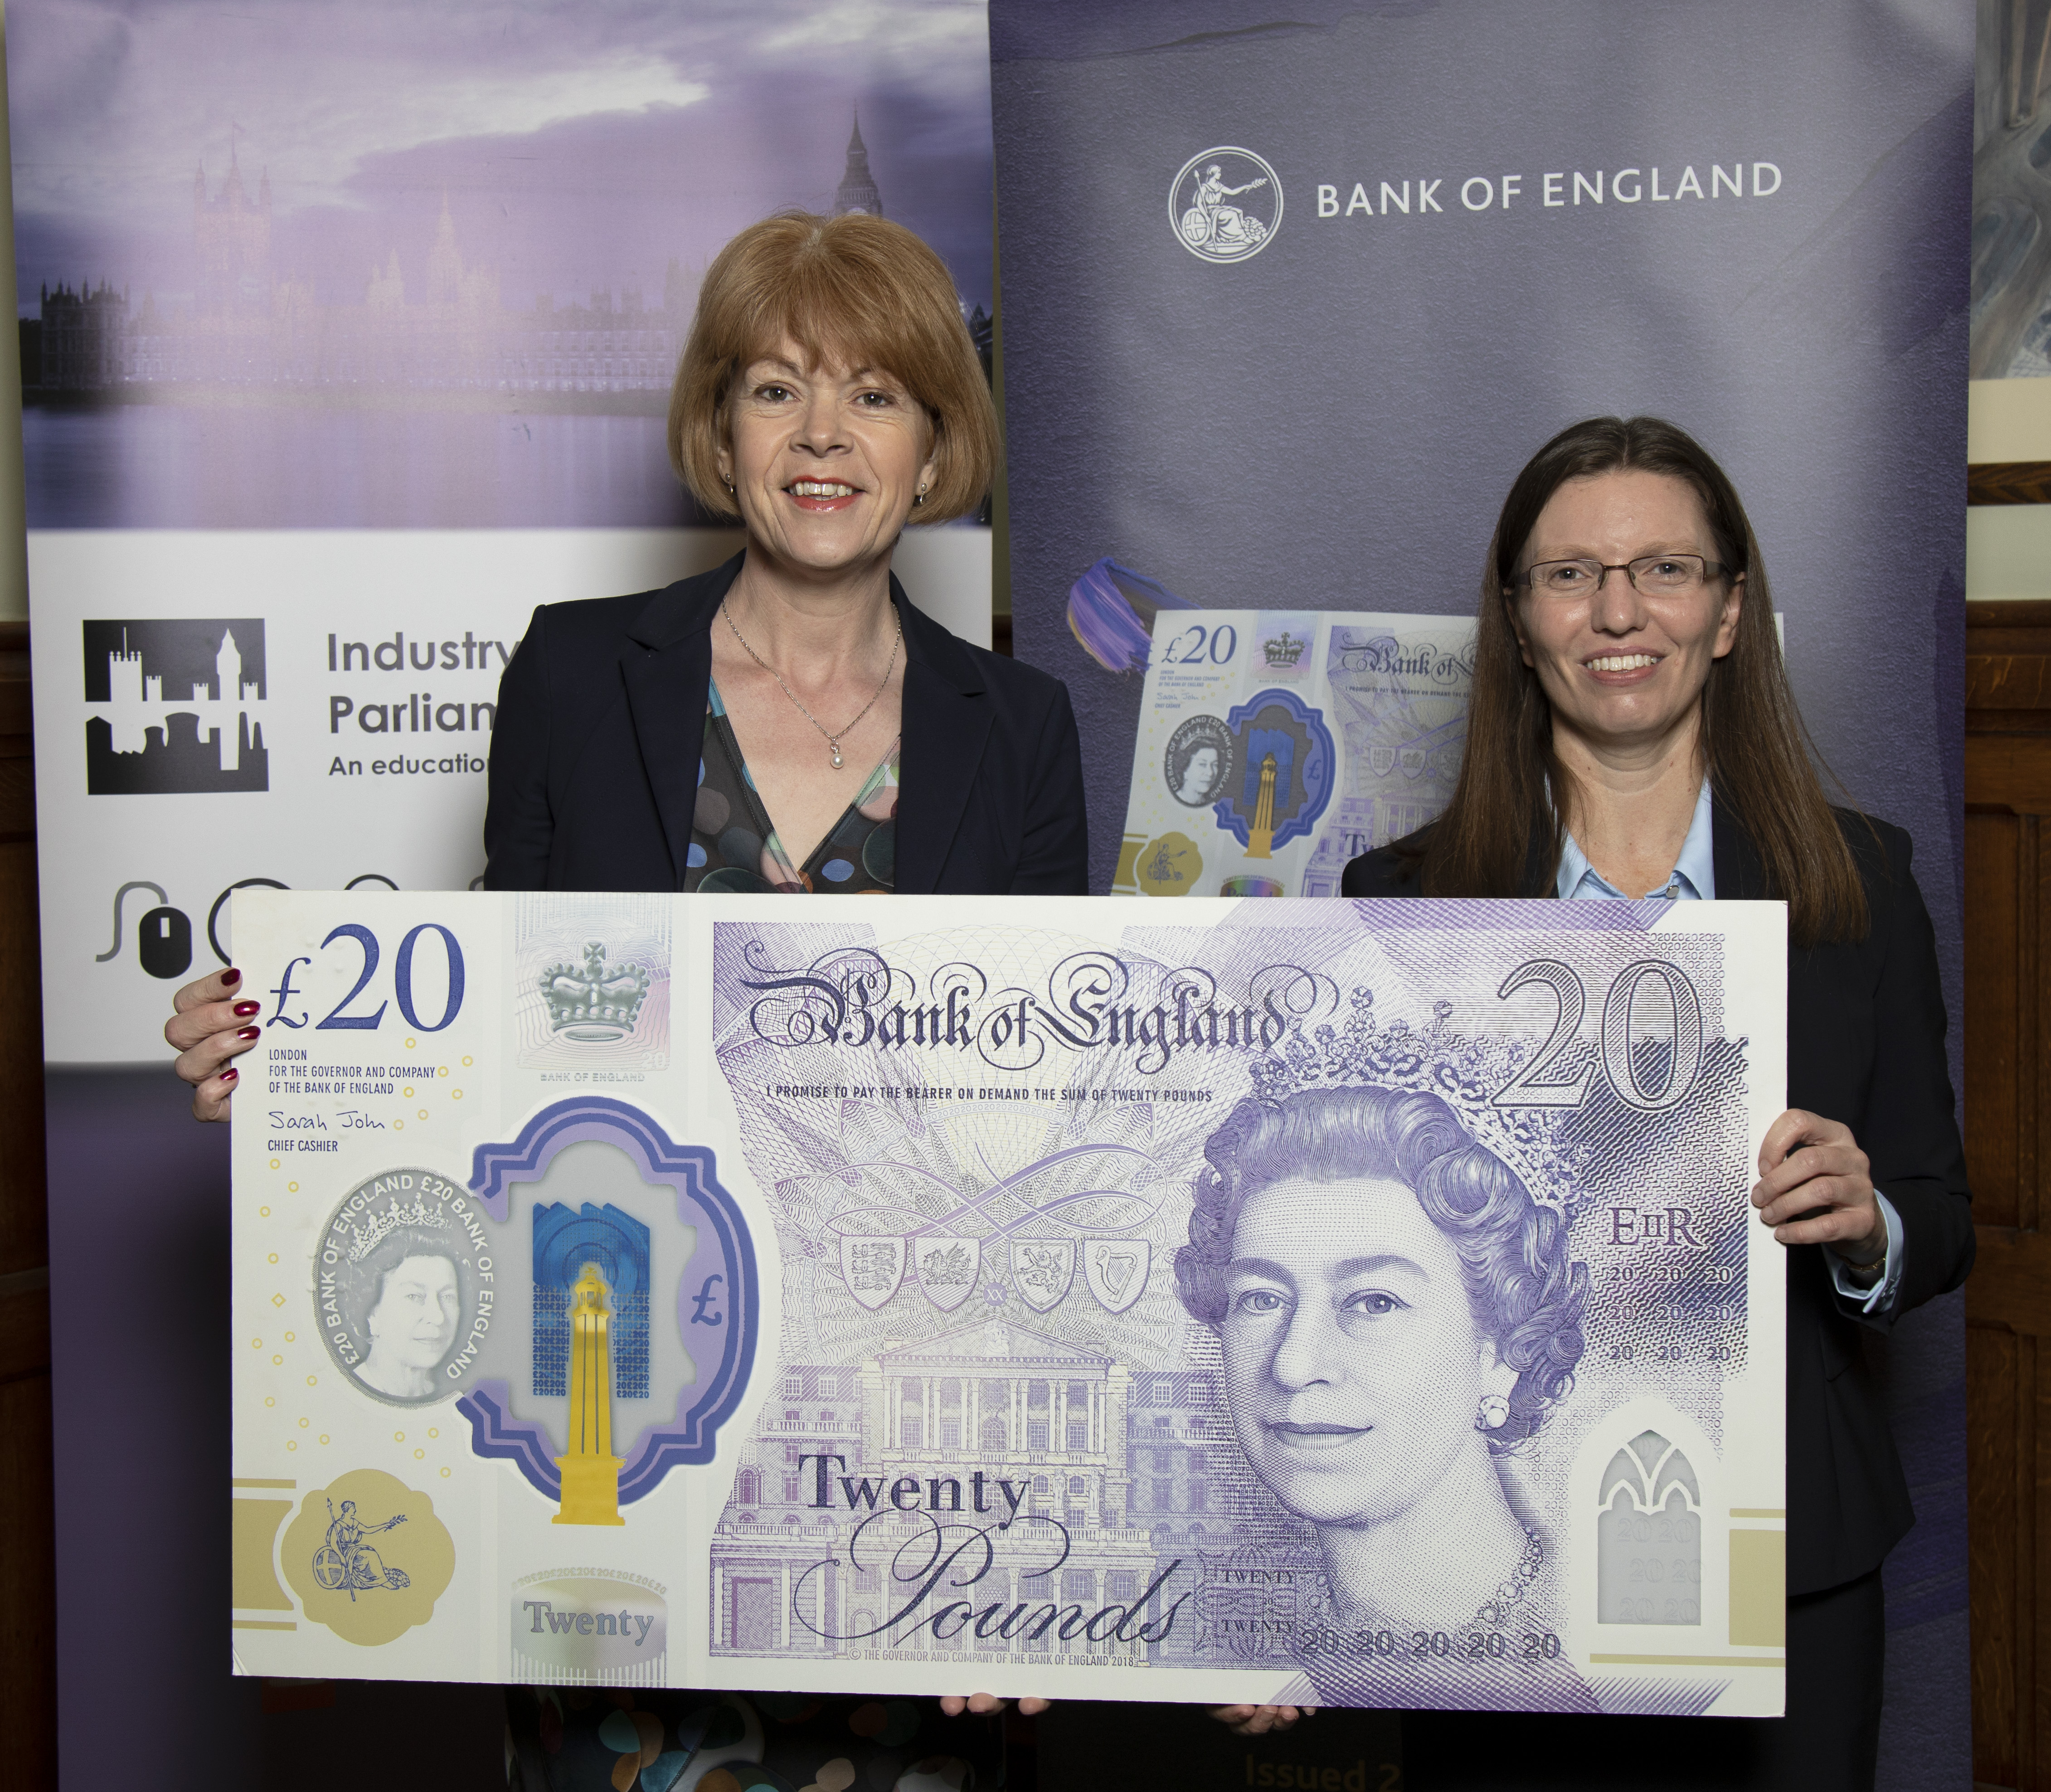 Watch out for the new £20 Note!